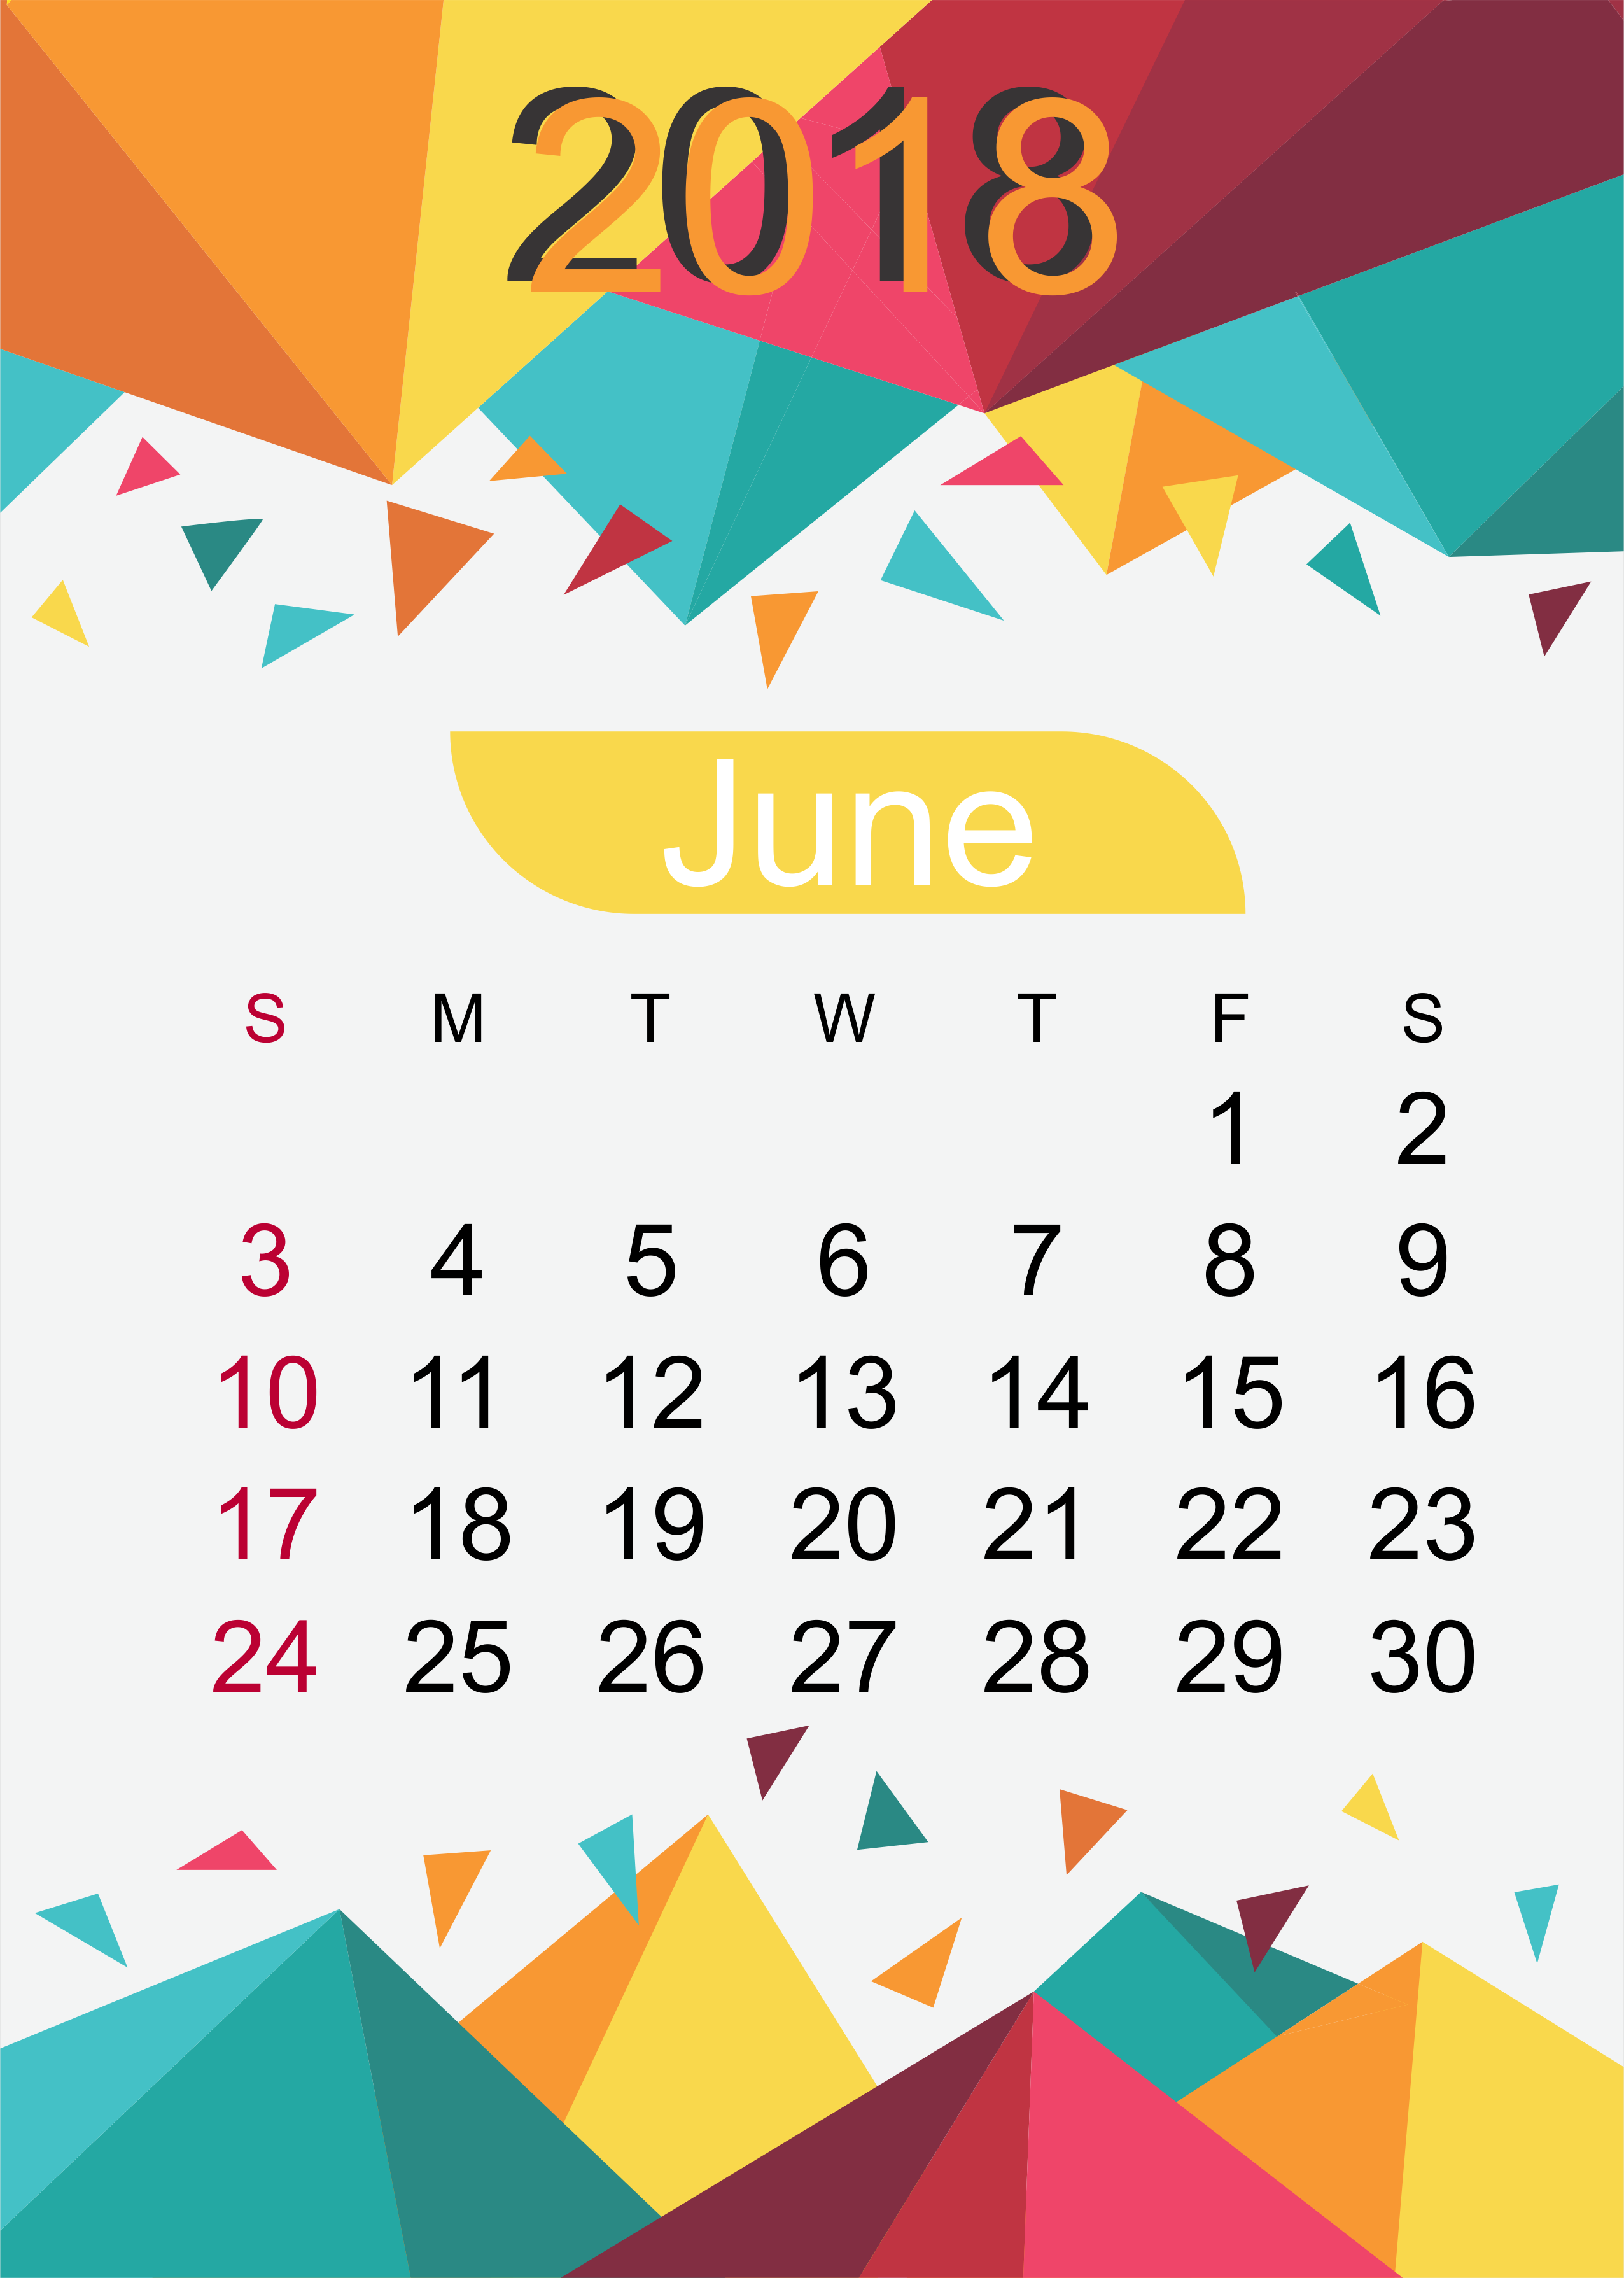 June Calendar Download 2018 Month